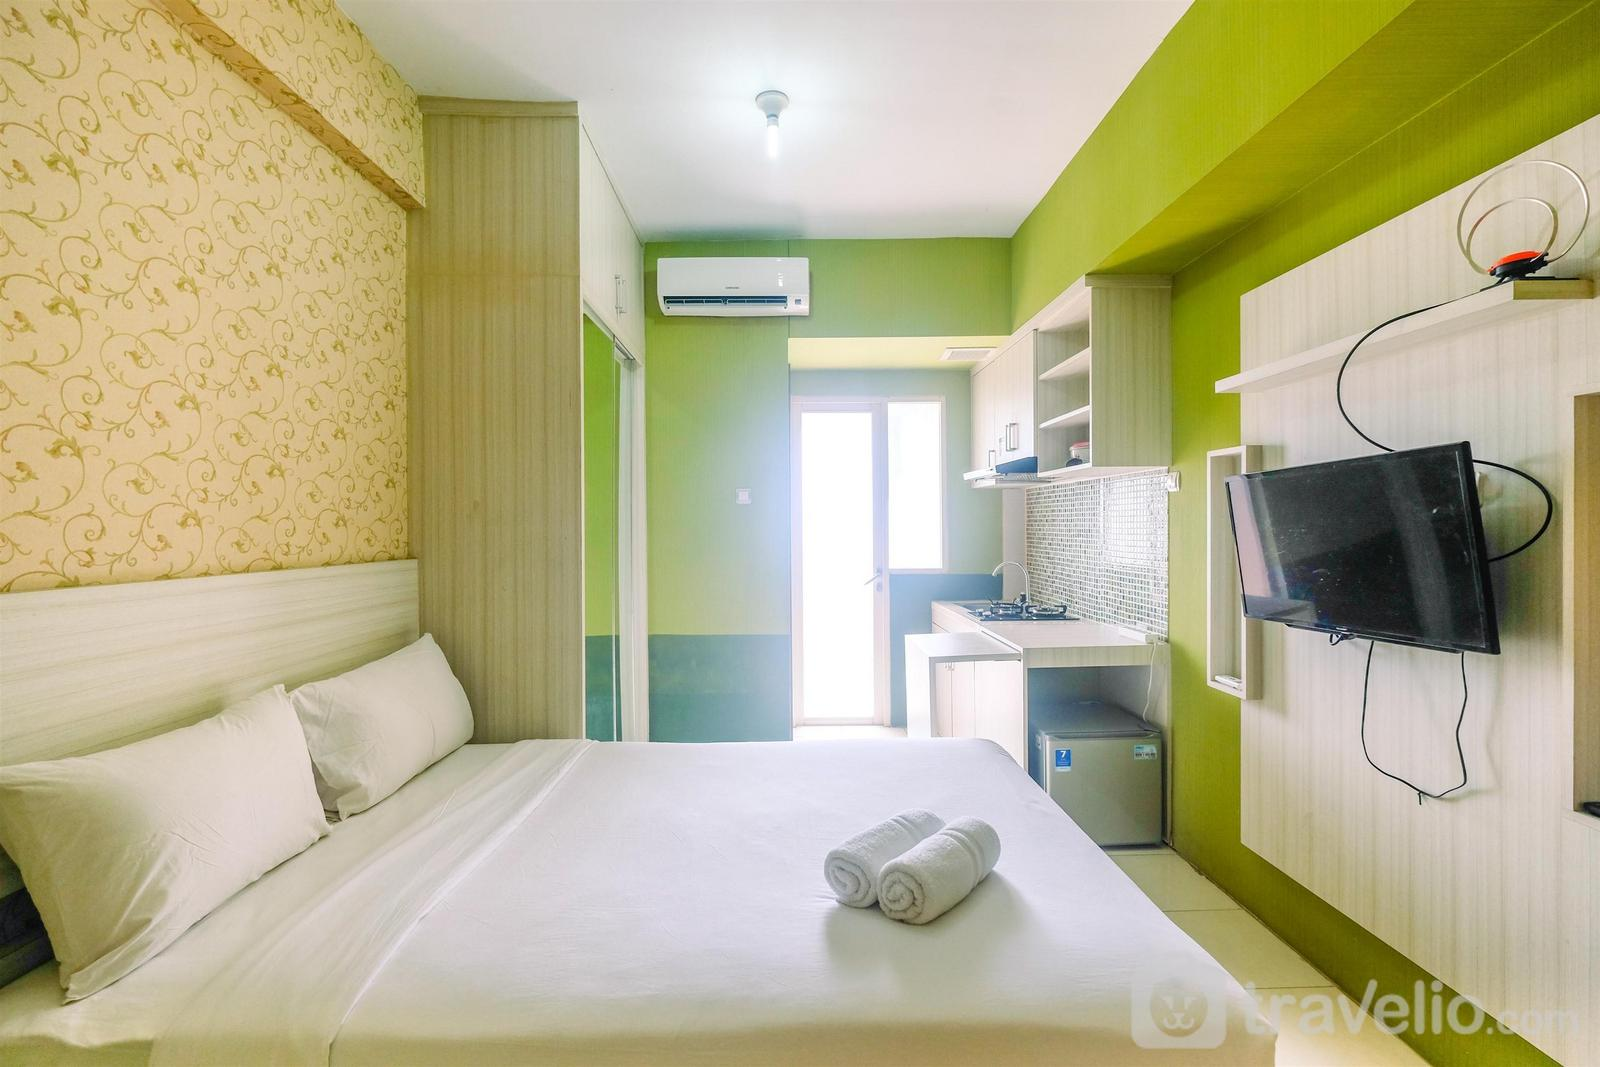 Apartemen Green Lake View - Relaxing and Simply Studio Green Lake View Apartment By Travelio